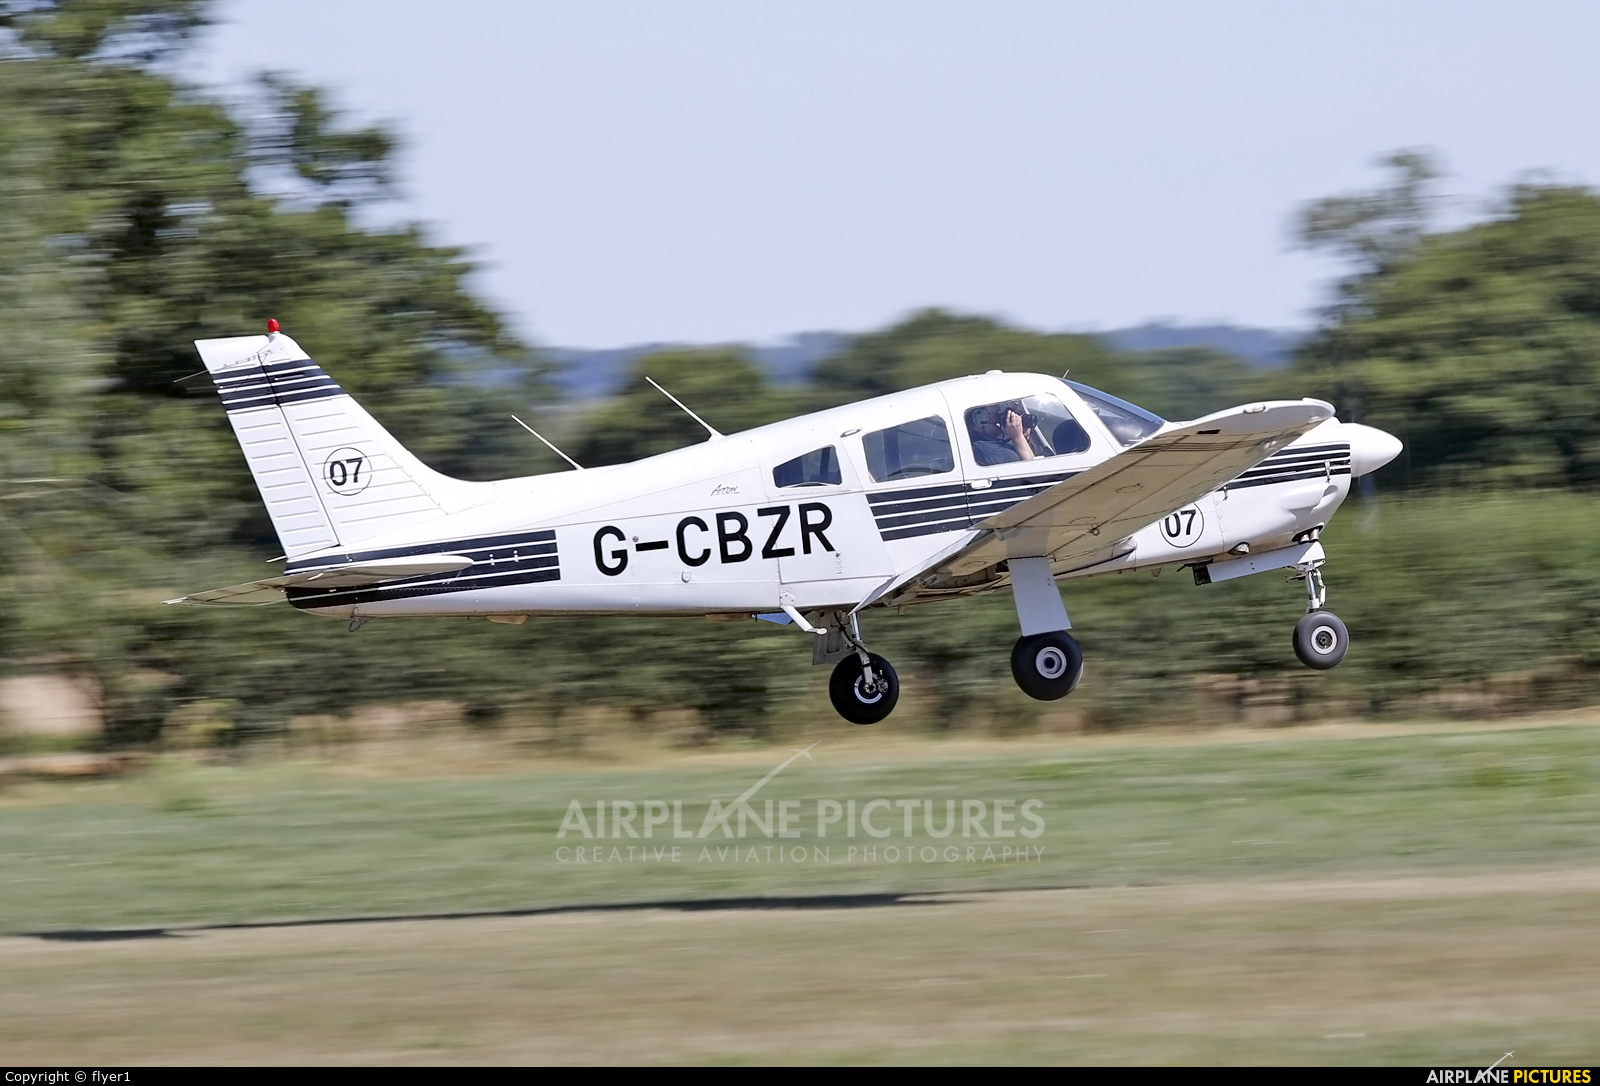 Private G-CBZR aircraft at Lashenden / Headcorn